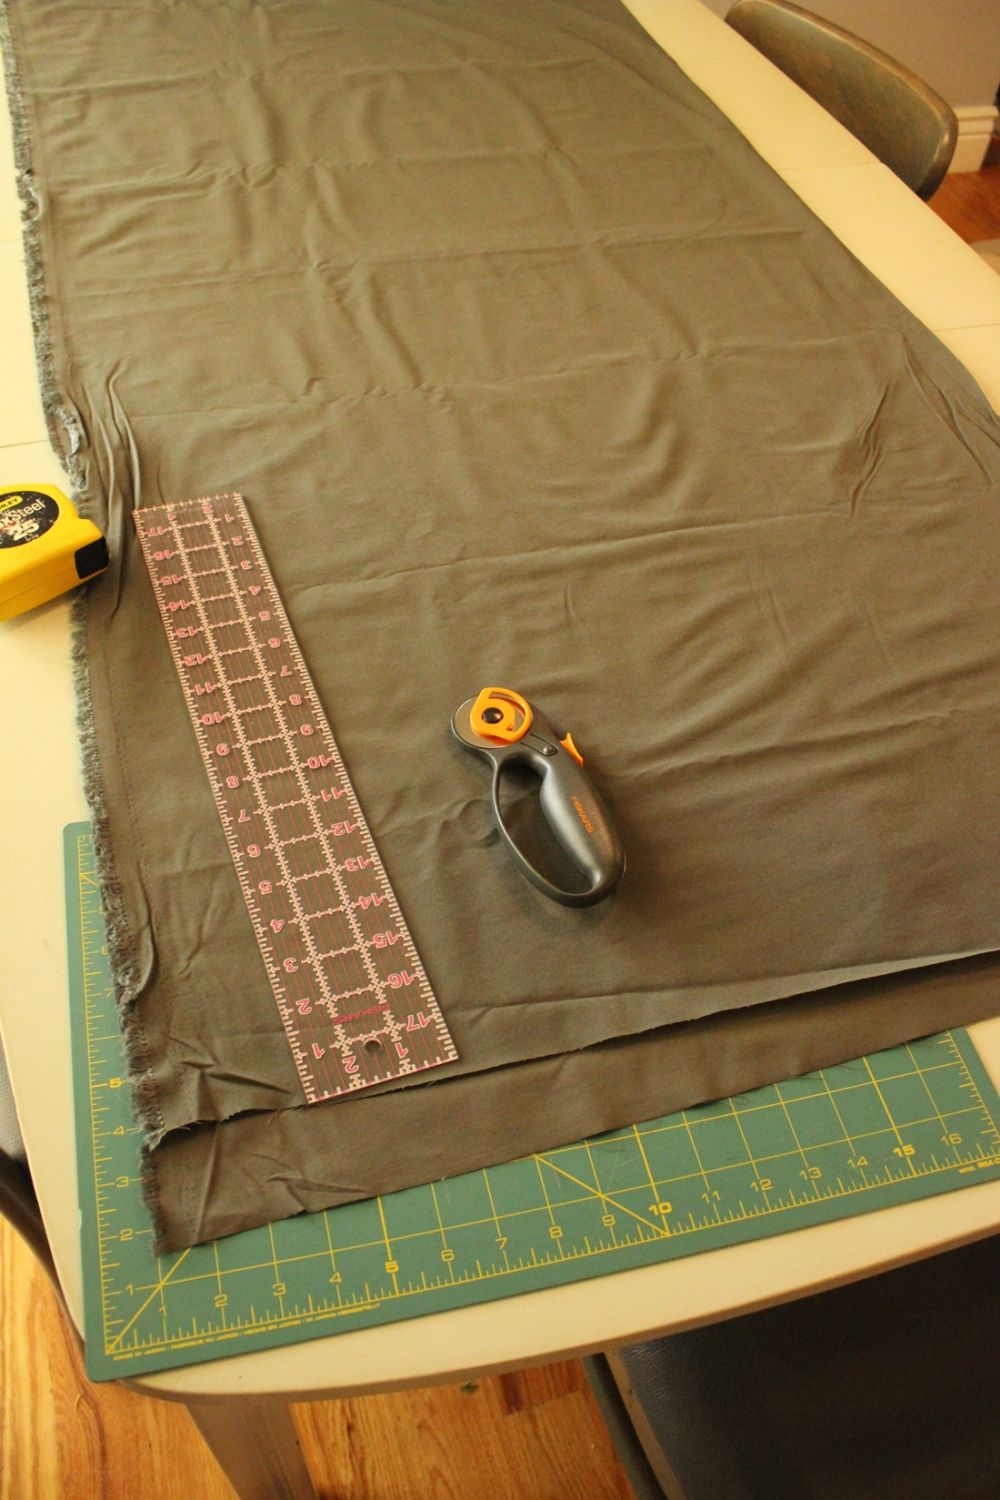 Begin by laying out the fabric